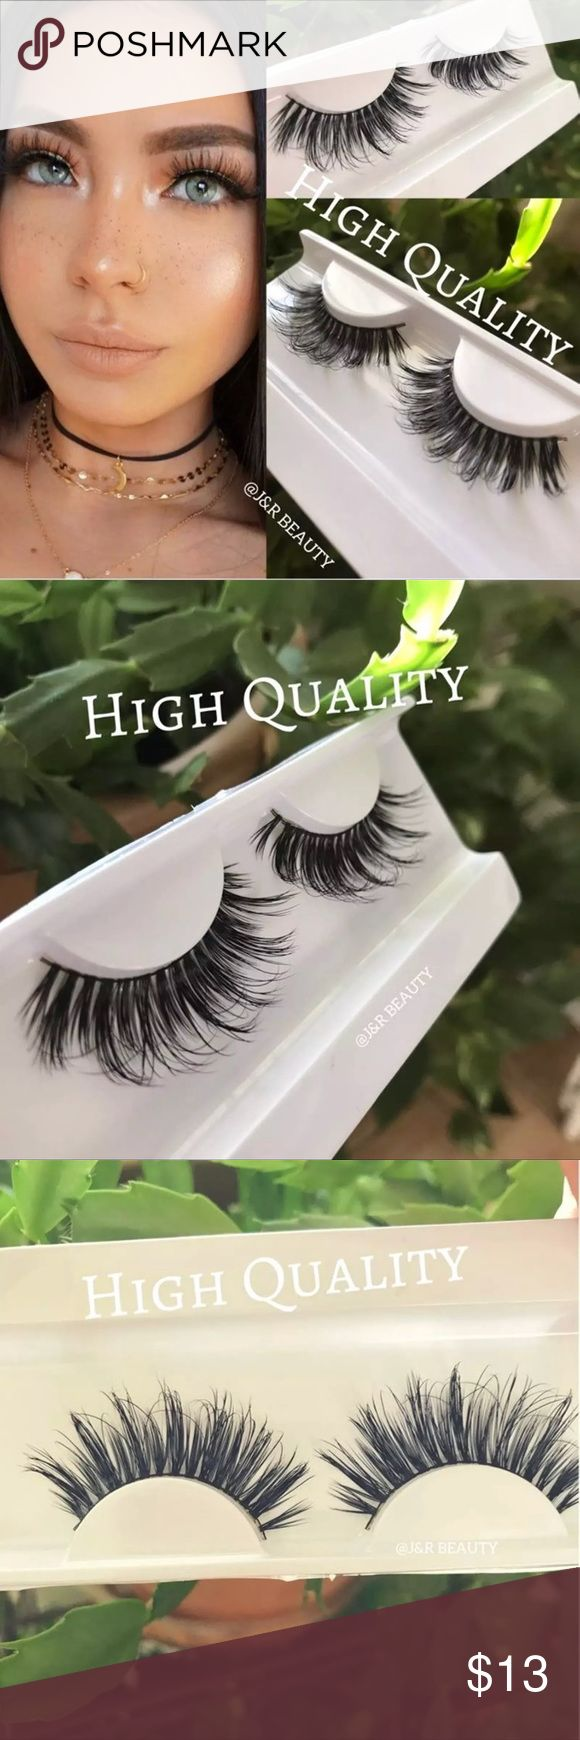 Mink lashes High quality +$2 Add on eyelash Applicator  +$3 Add on eyelash glue Please message me if you want to add them.  # tags  Iconic, mink, red cherry eyelashes, house of lashes, doll, kawaii, case, full, natural,  Koko, Ardell, wispies, Demi , makeup, Iconic, mink, red cherry eyelashes, house of lashes, doll, kawaii, case, full, natural,  Koko, Ardell, wispies, Demi , makeup, mascara, eyelash applicator, Mykonos Mink , Lashes , wispy ,eyelash case, mink lashes  Ship within 24 hours ❣️…